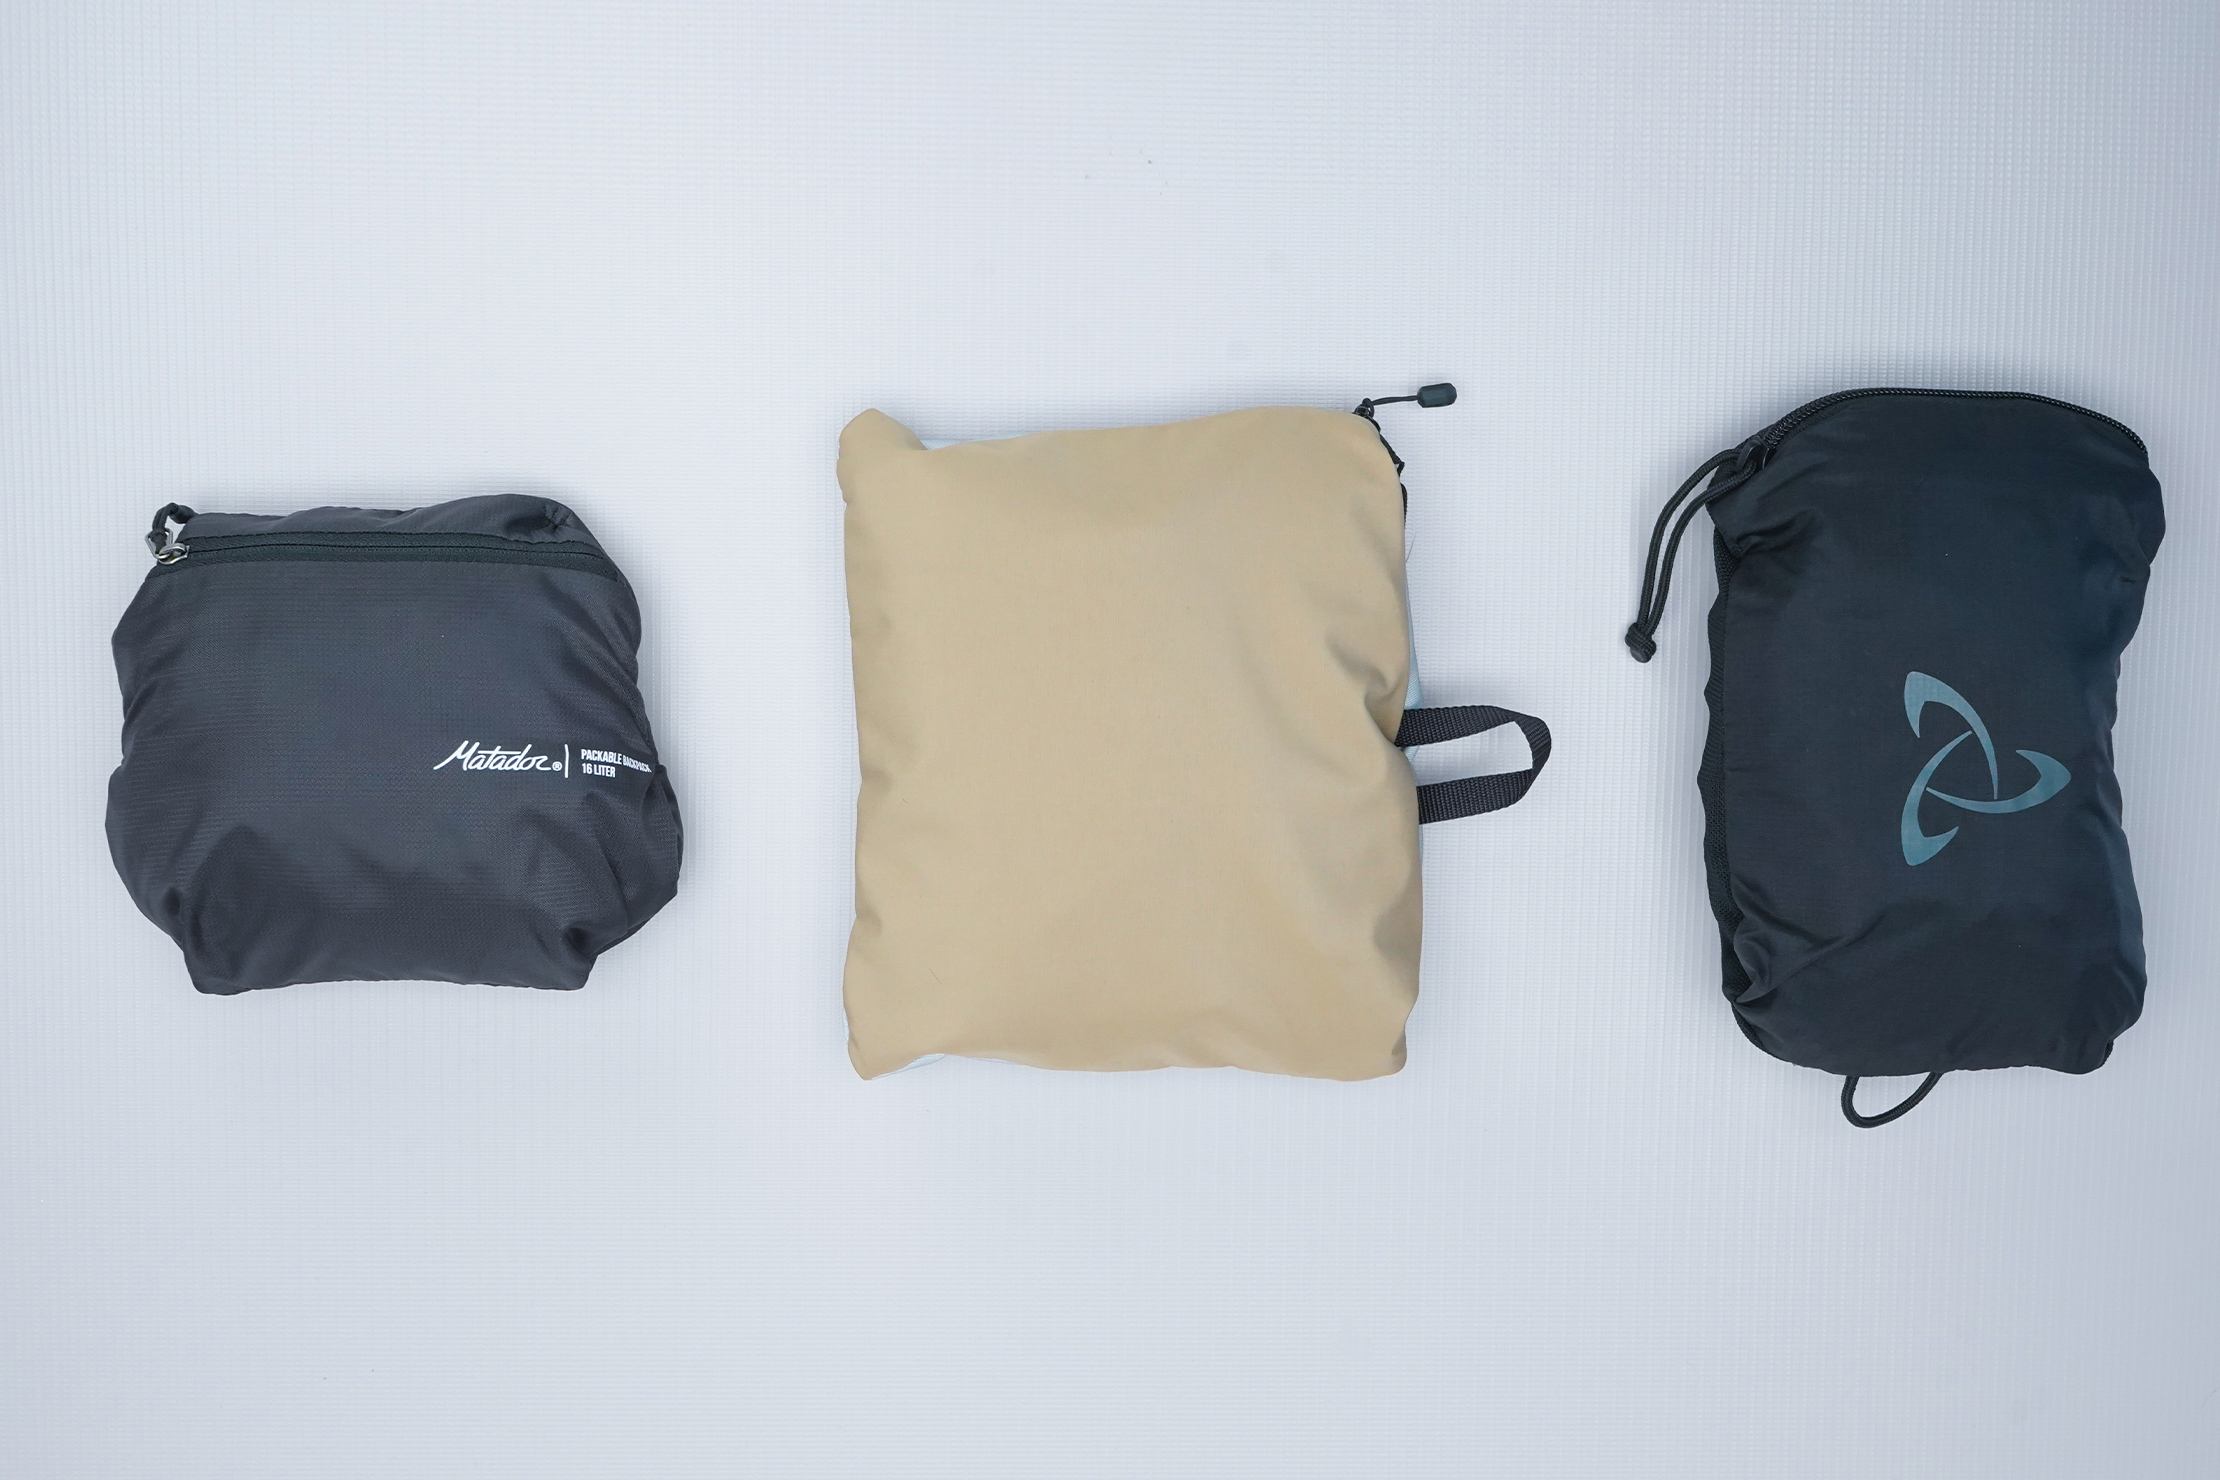 WaterField Designs Packable Backpack Packed Compare